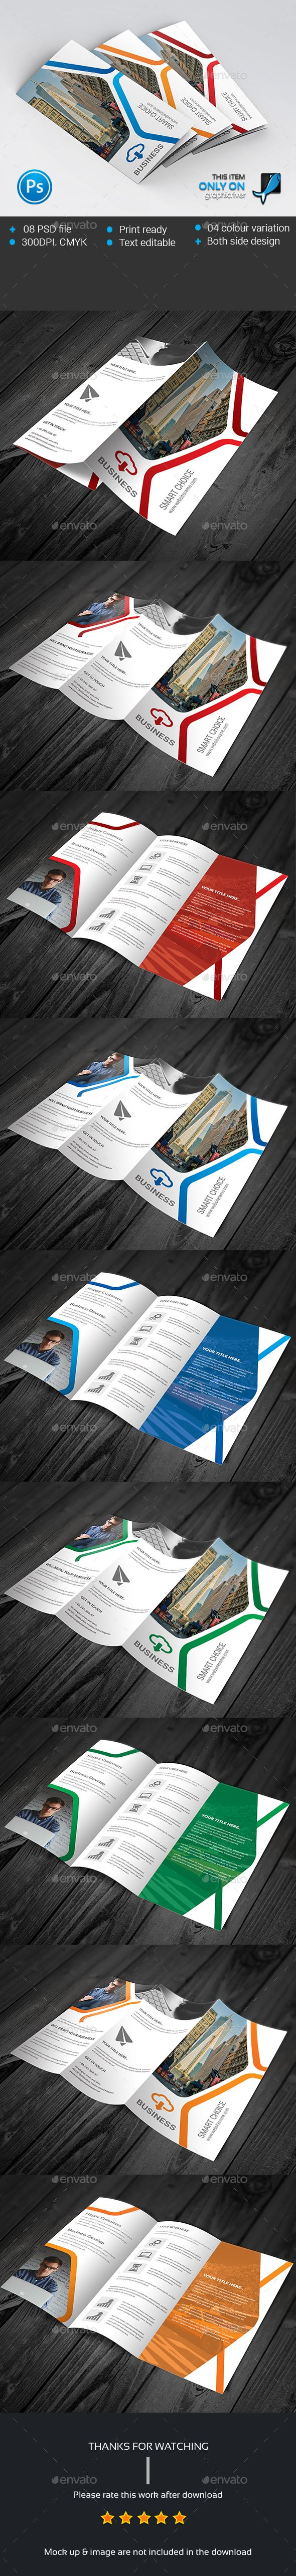 Corporate Trifold Brochure Template PSD #design Download: http://graphicriver.net/item/corporate-trifold-brochure/13919969?ref=ksioks